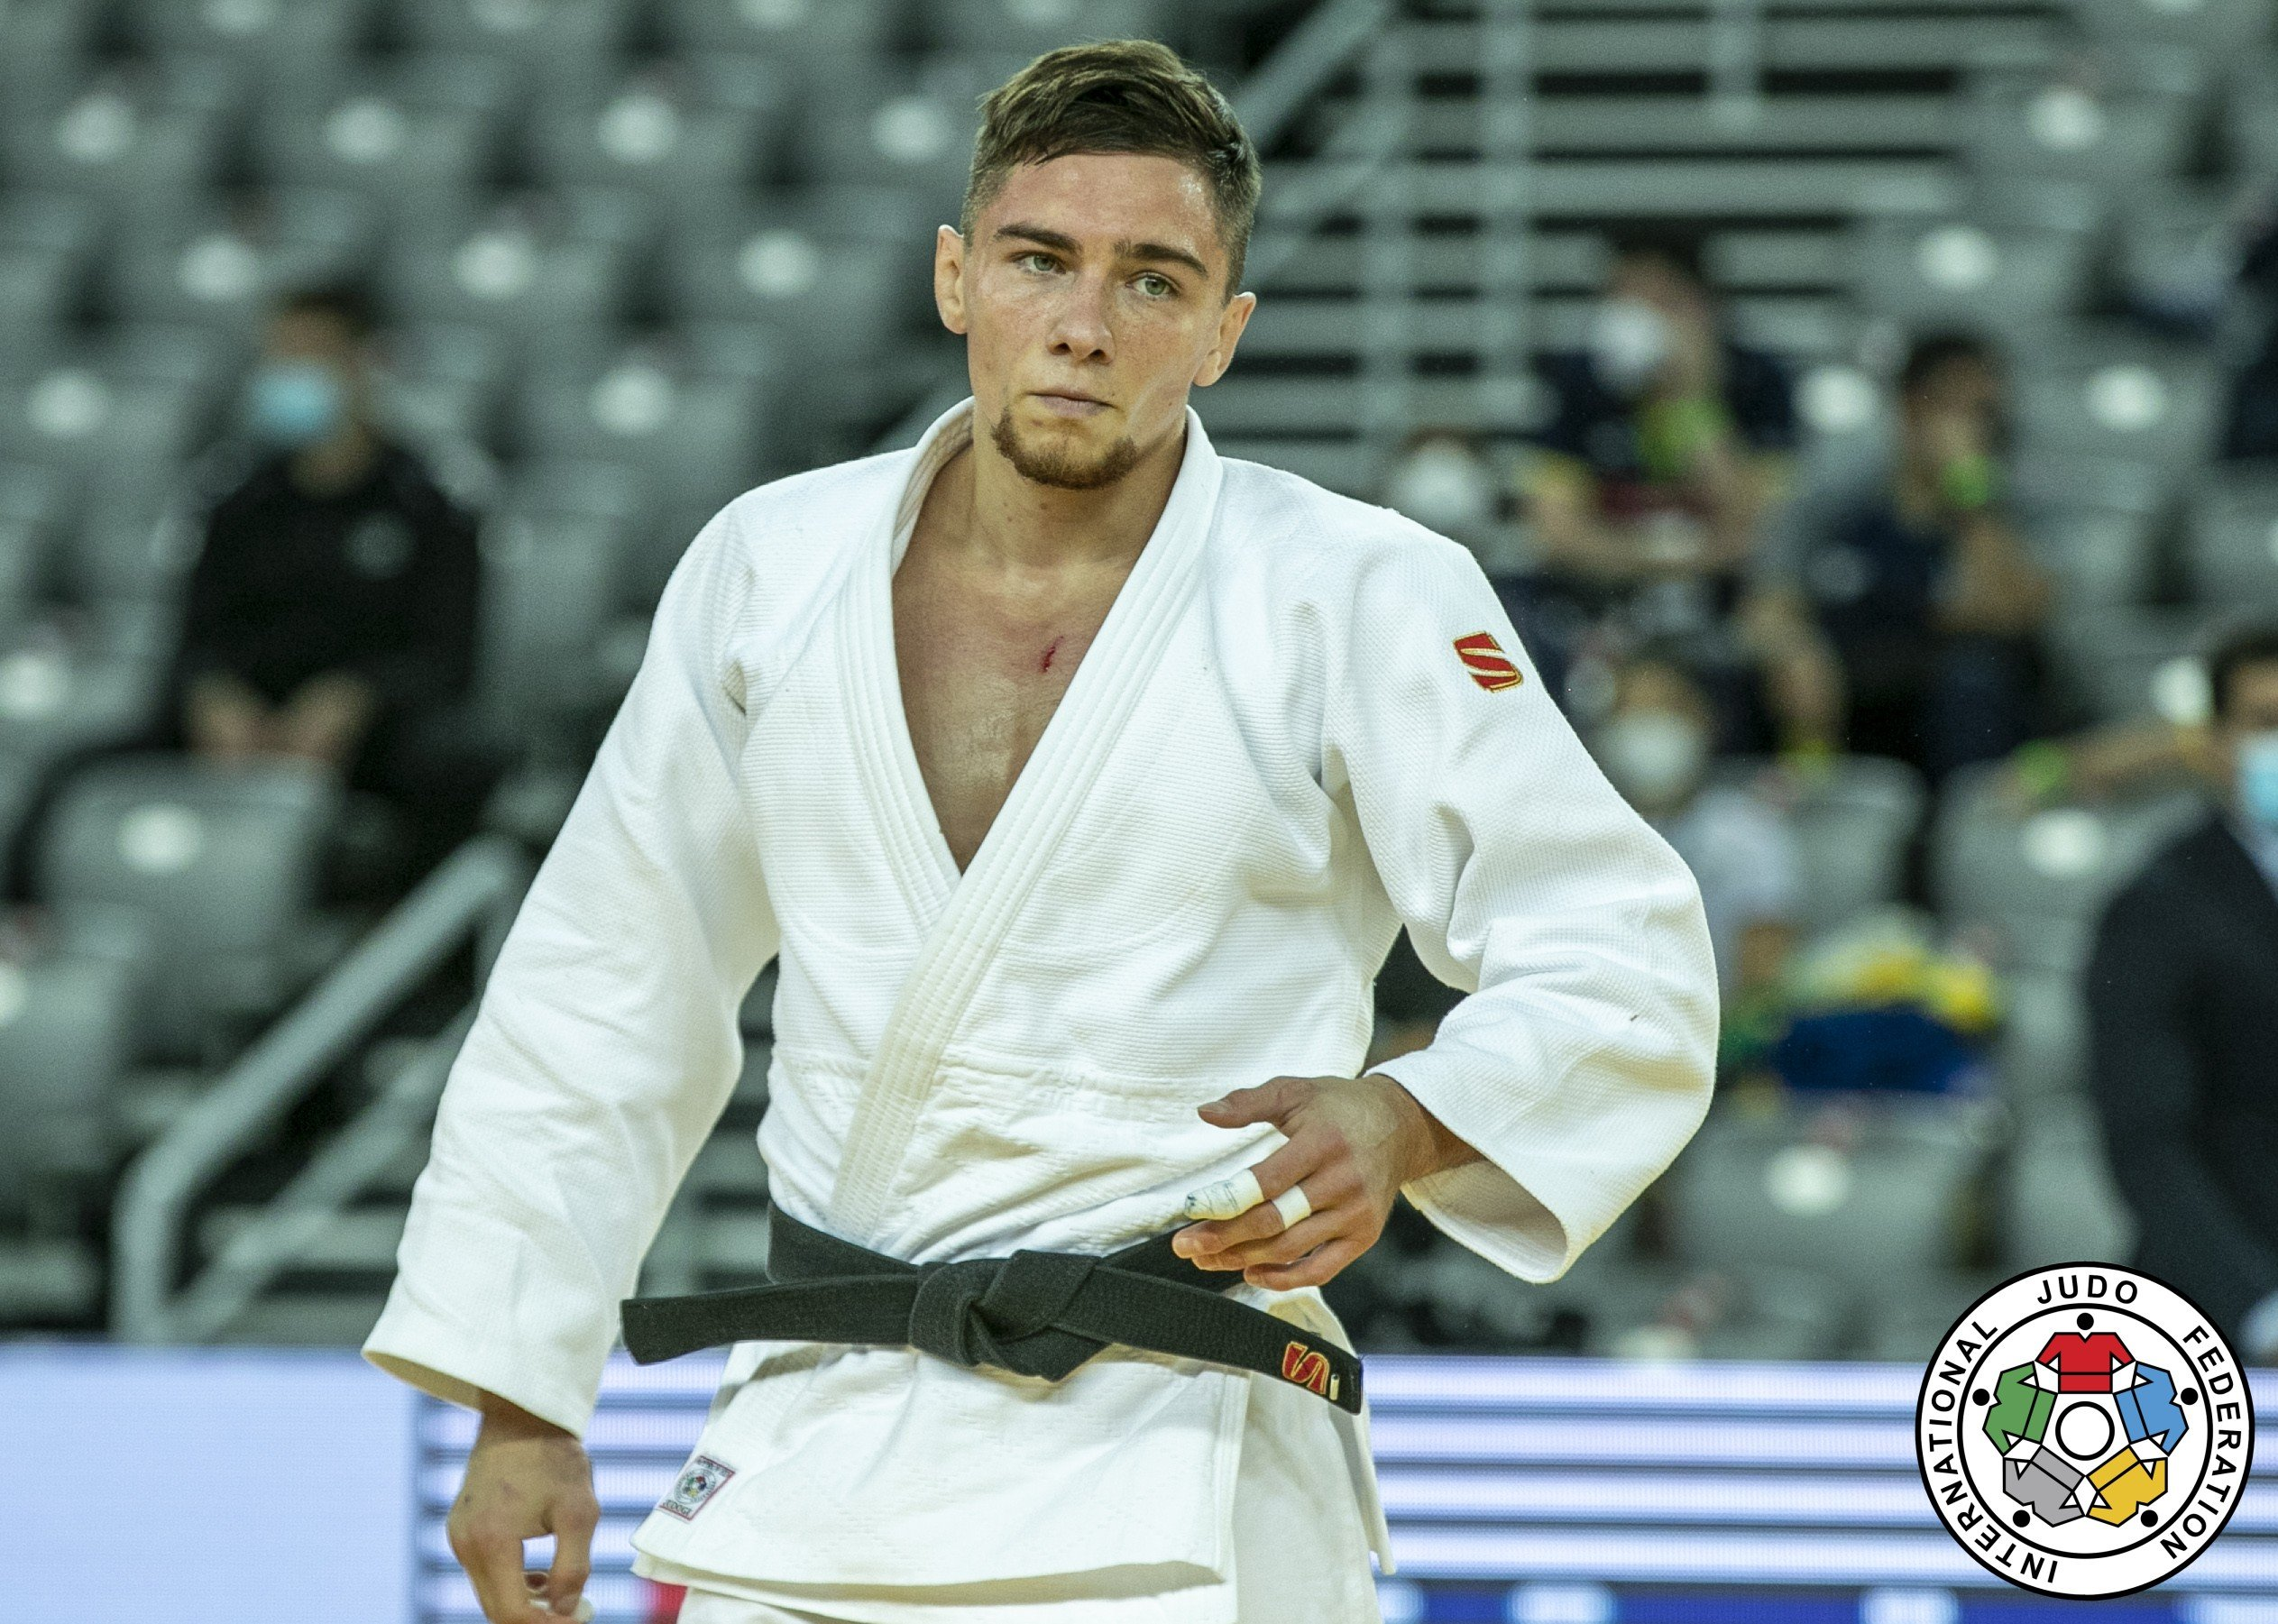 VIERU IS CLASS ACT ON OPENING DAY OF ZAGREB GRAND PRIX